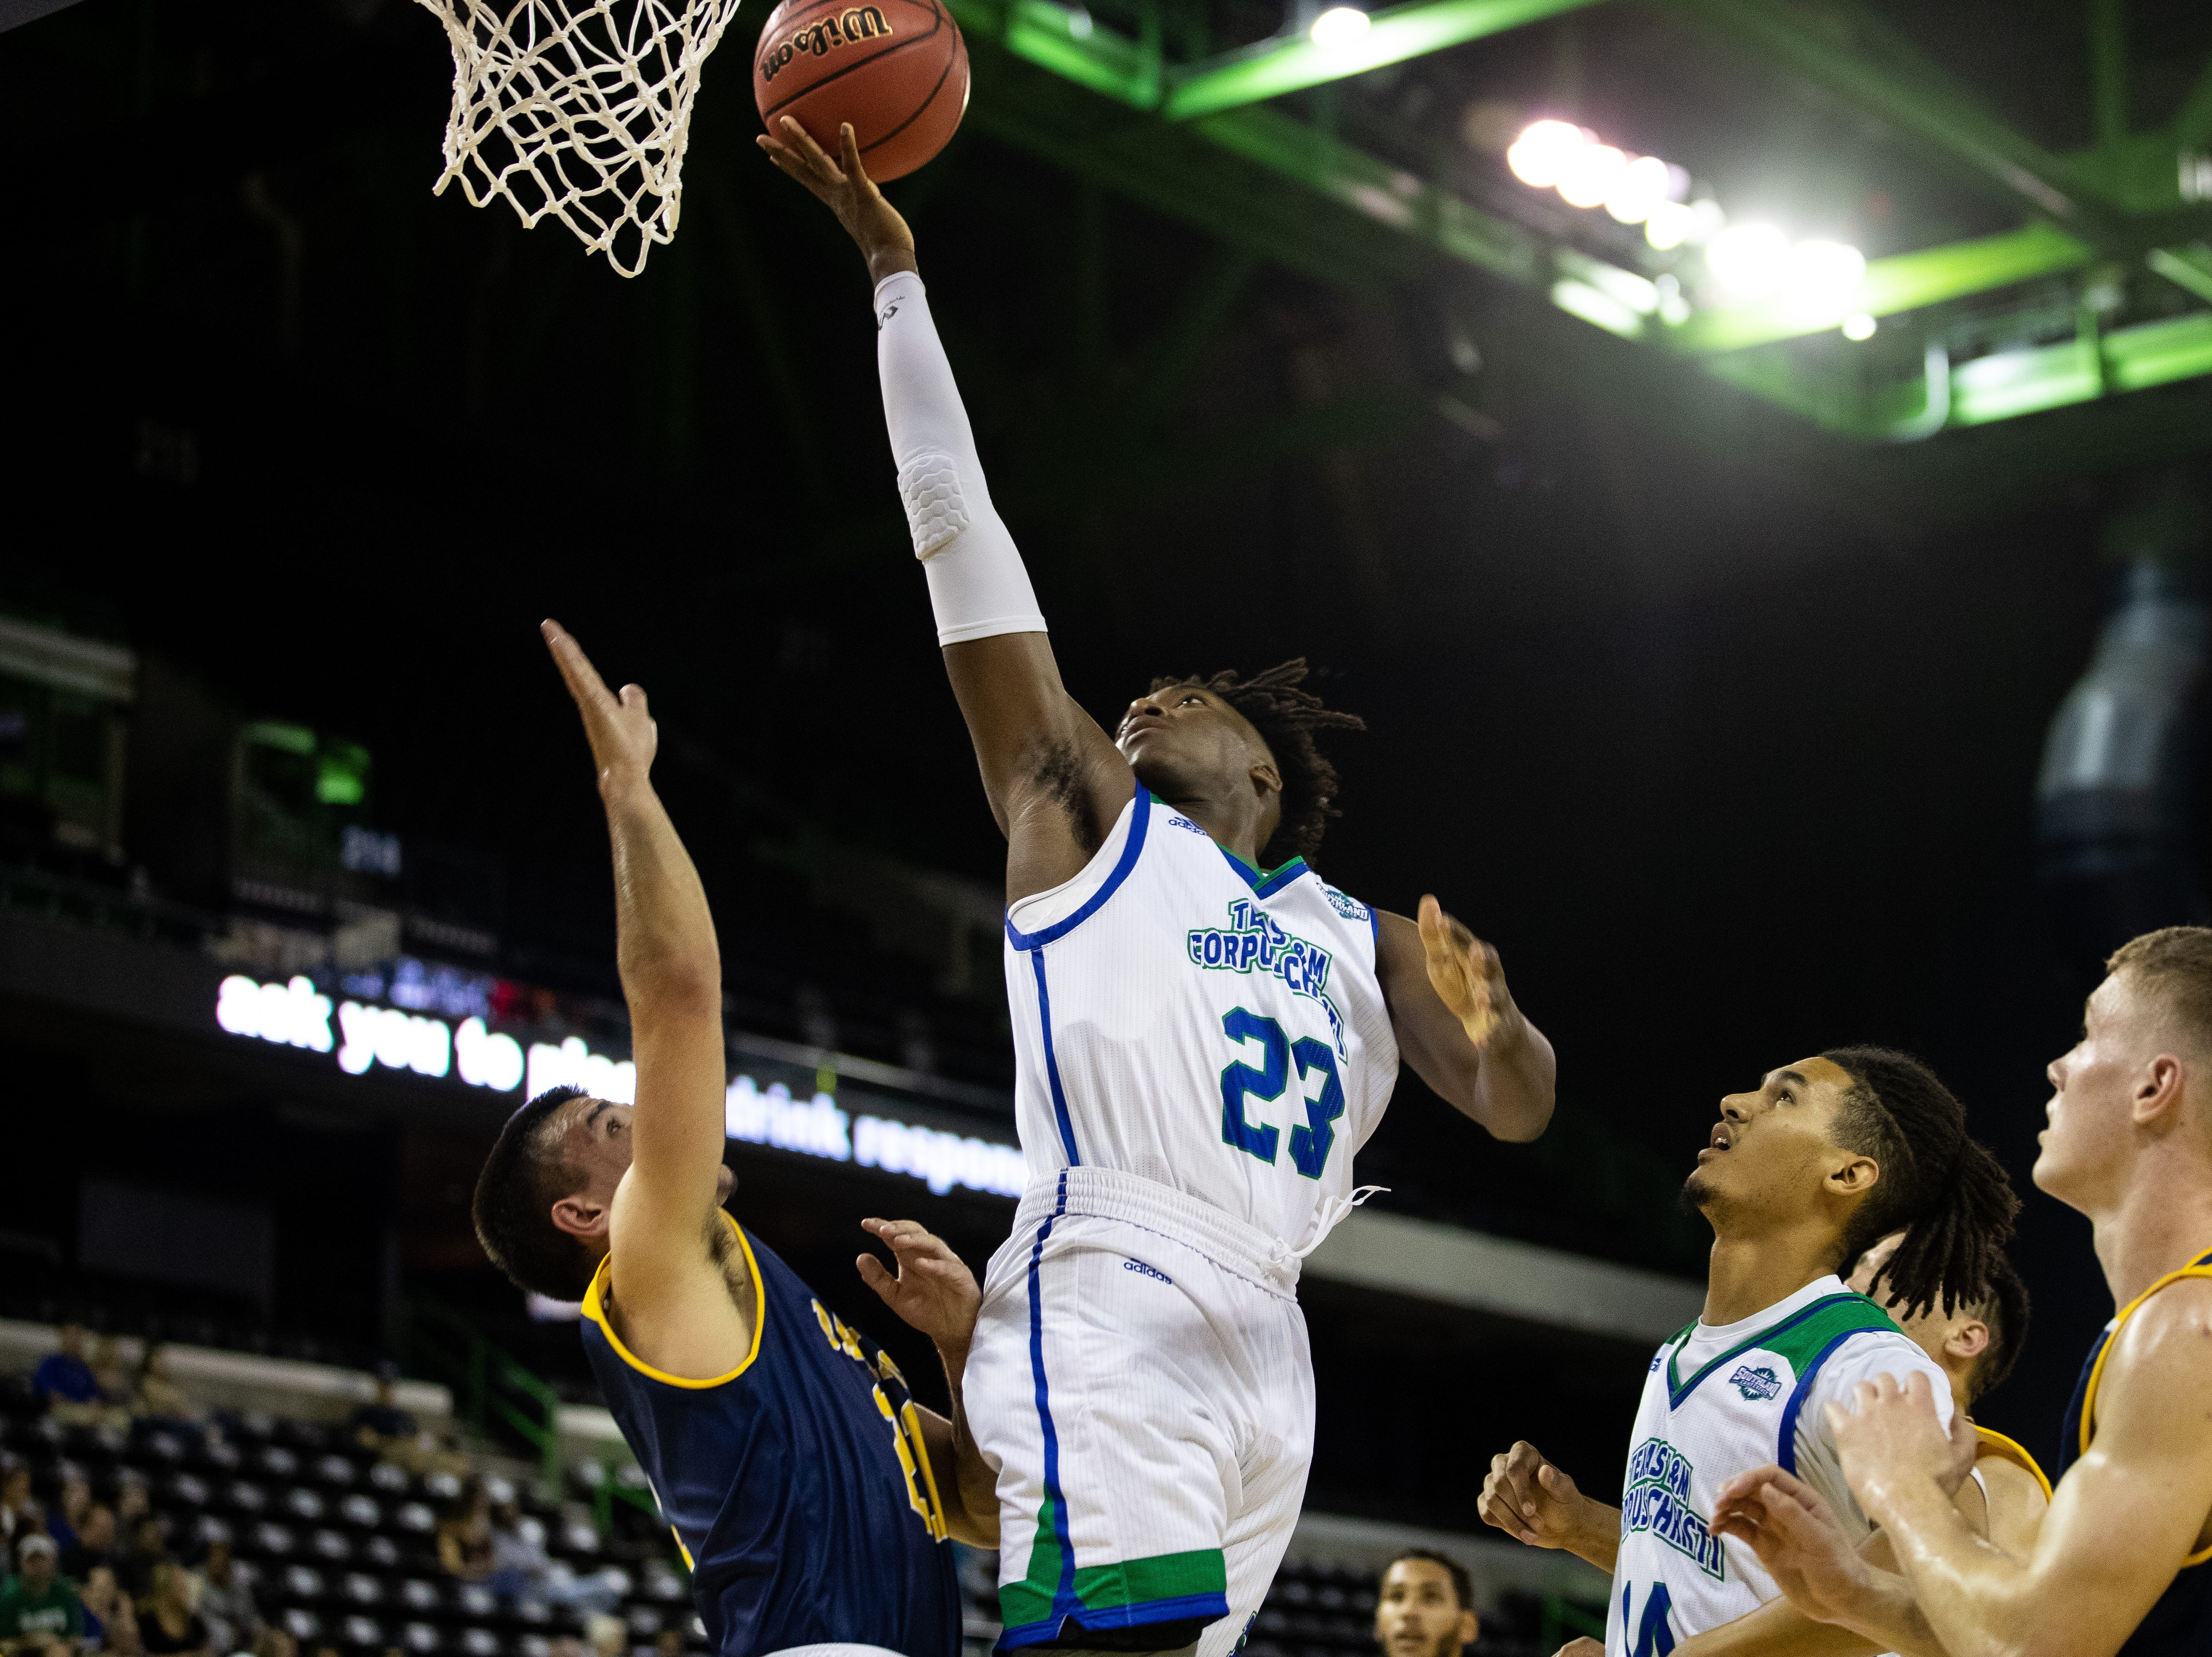 Islanders Jalon Clark jumps to make a layup during their game against Howard Payne at the American Bank Center on Wednesday, Nov. 7, 2018.